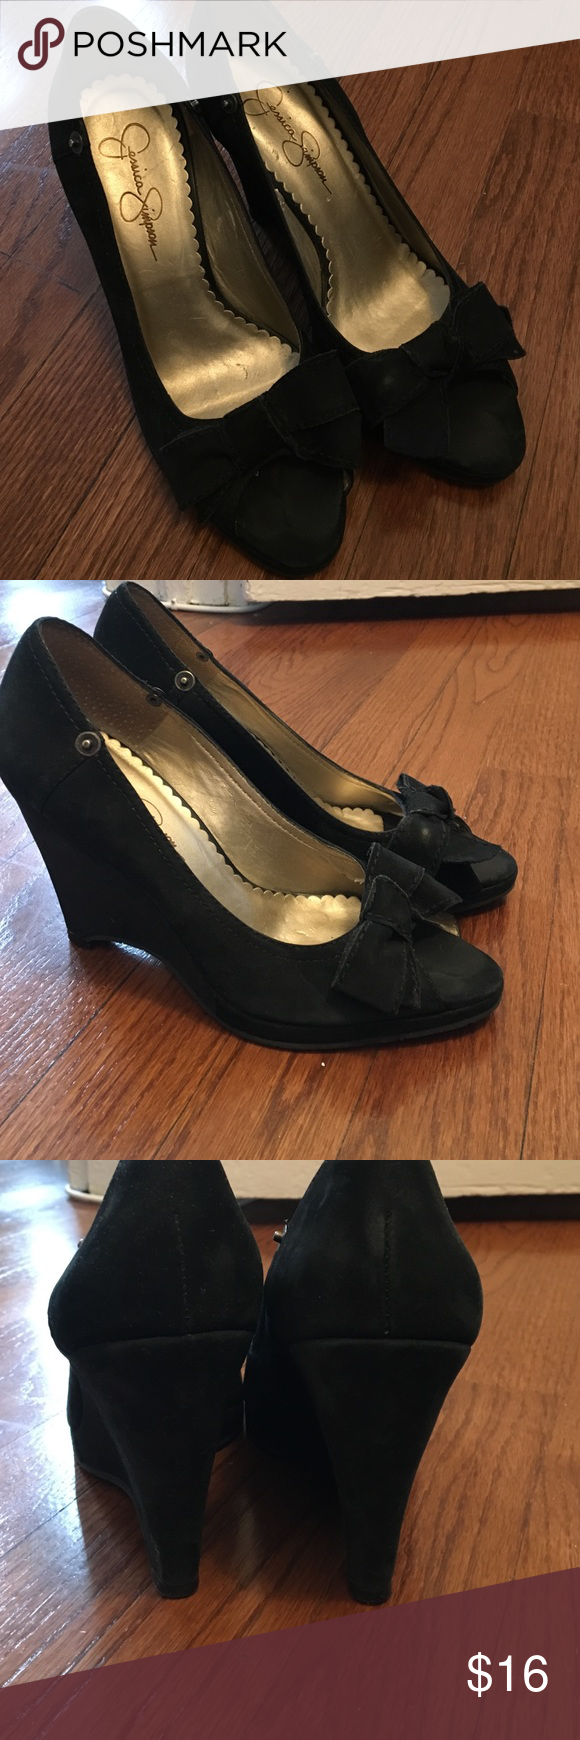 Jessica Simpson Black Heels Black suede Jessica Simpson heels. In good condition. Beautiful bows on the front. Very comfortable shoes. A few signs of wear but in overall good shape. Jessica Simpson Shoes Heels